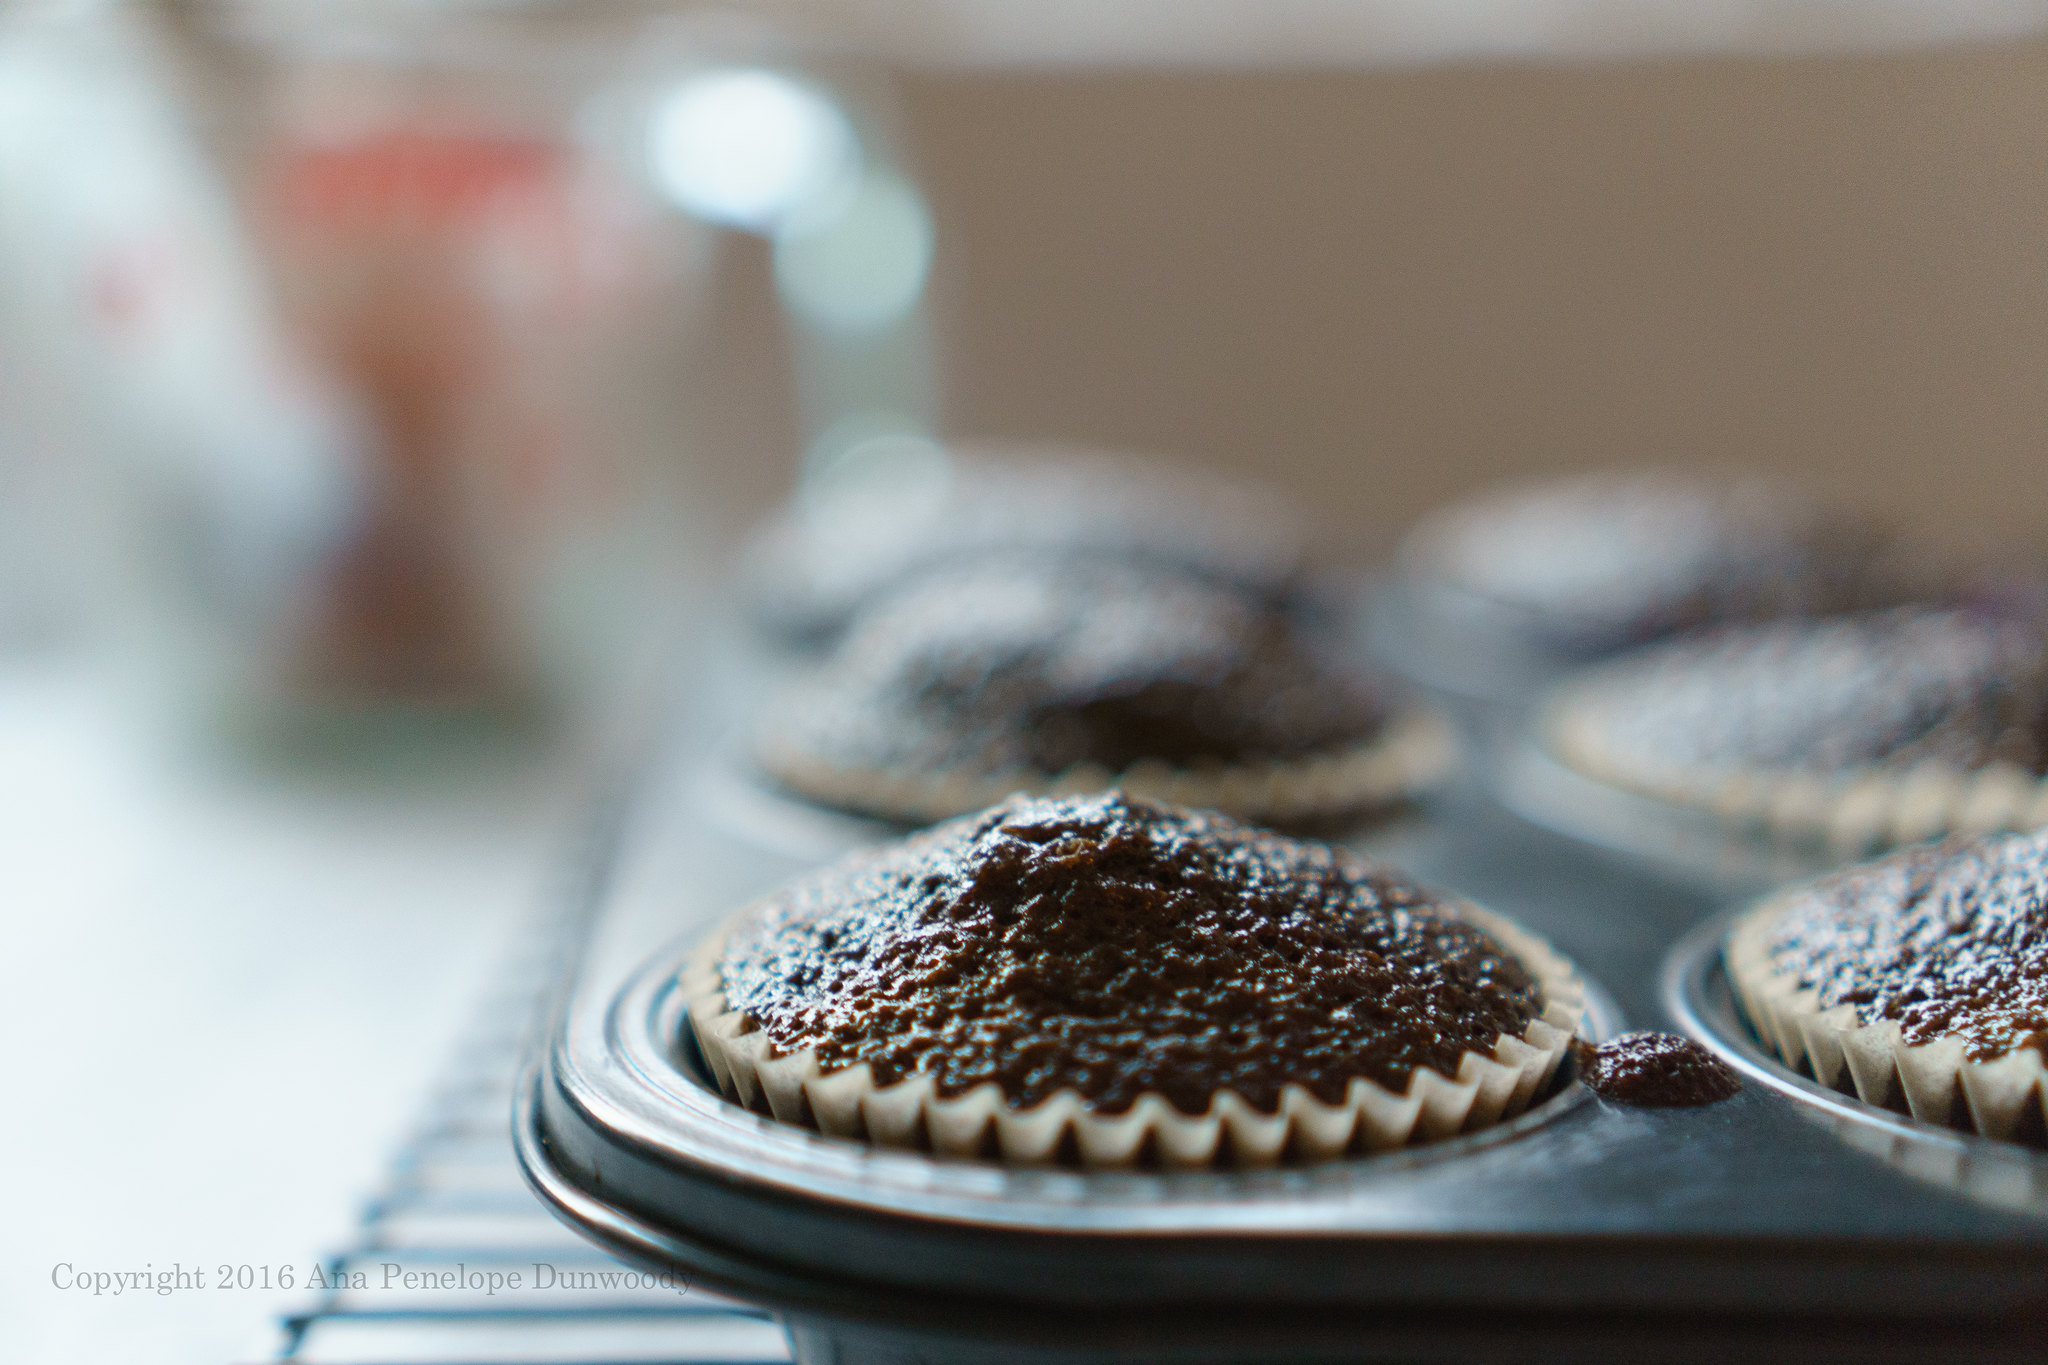 Baked Chocolate Cupcakes